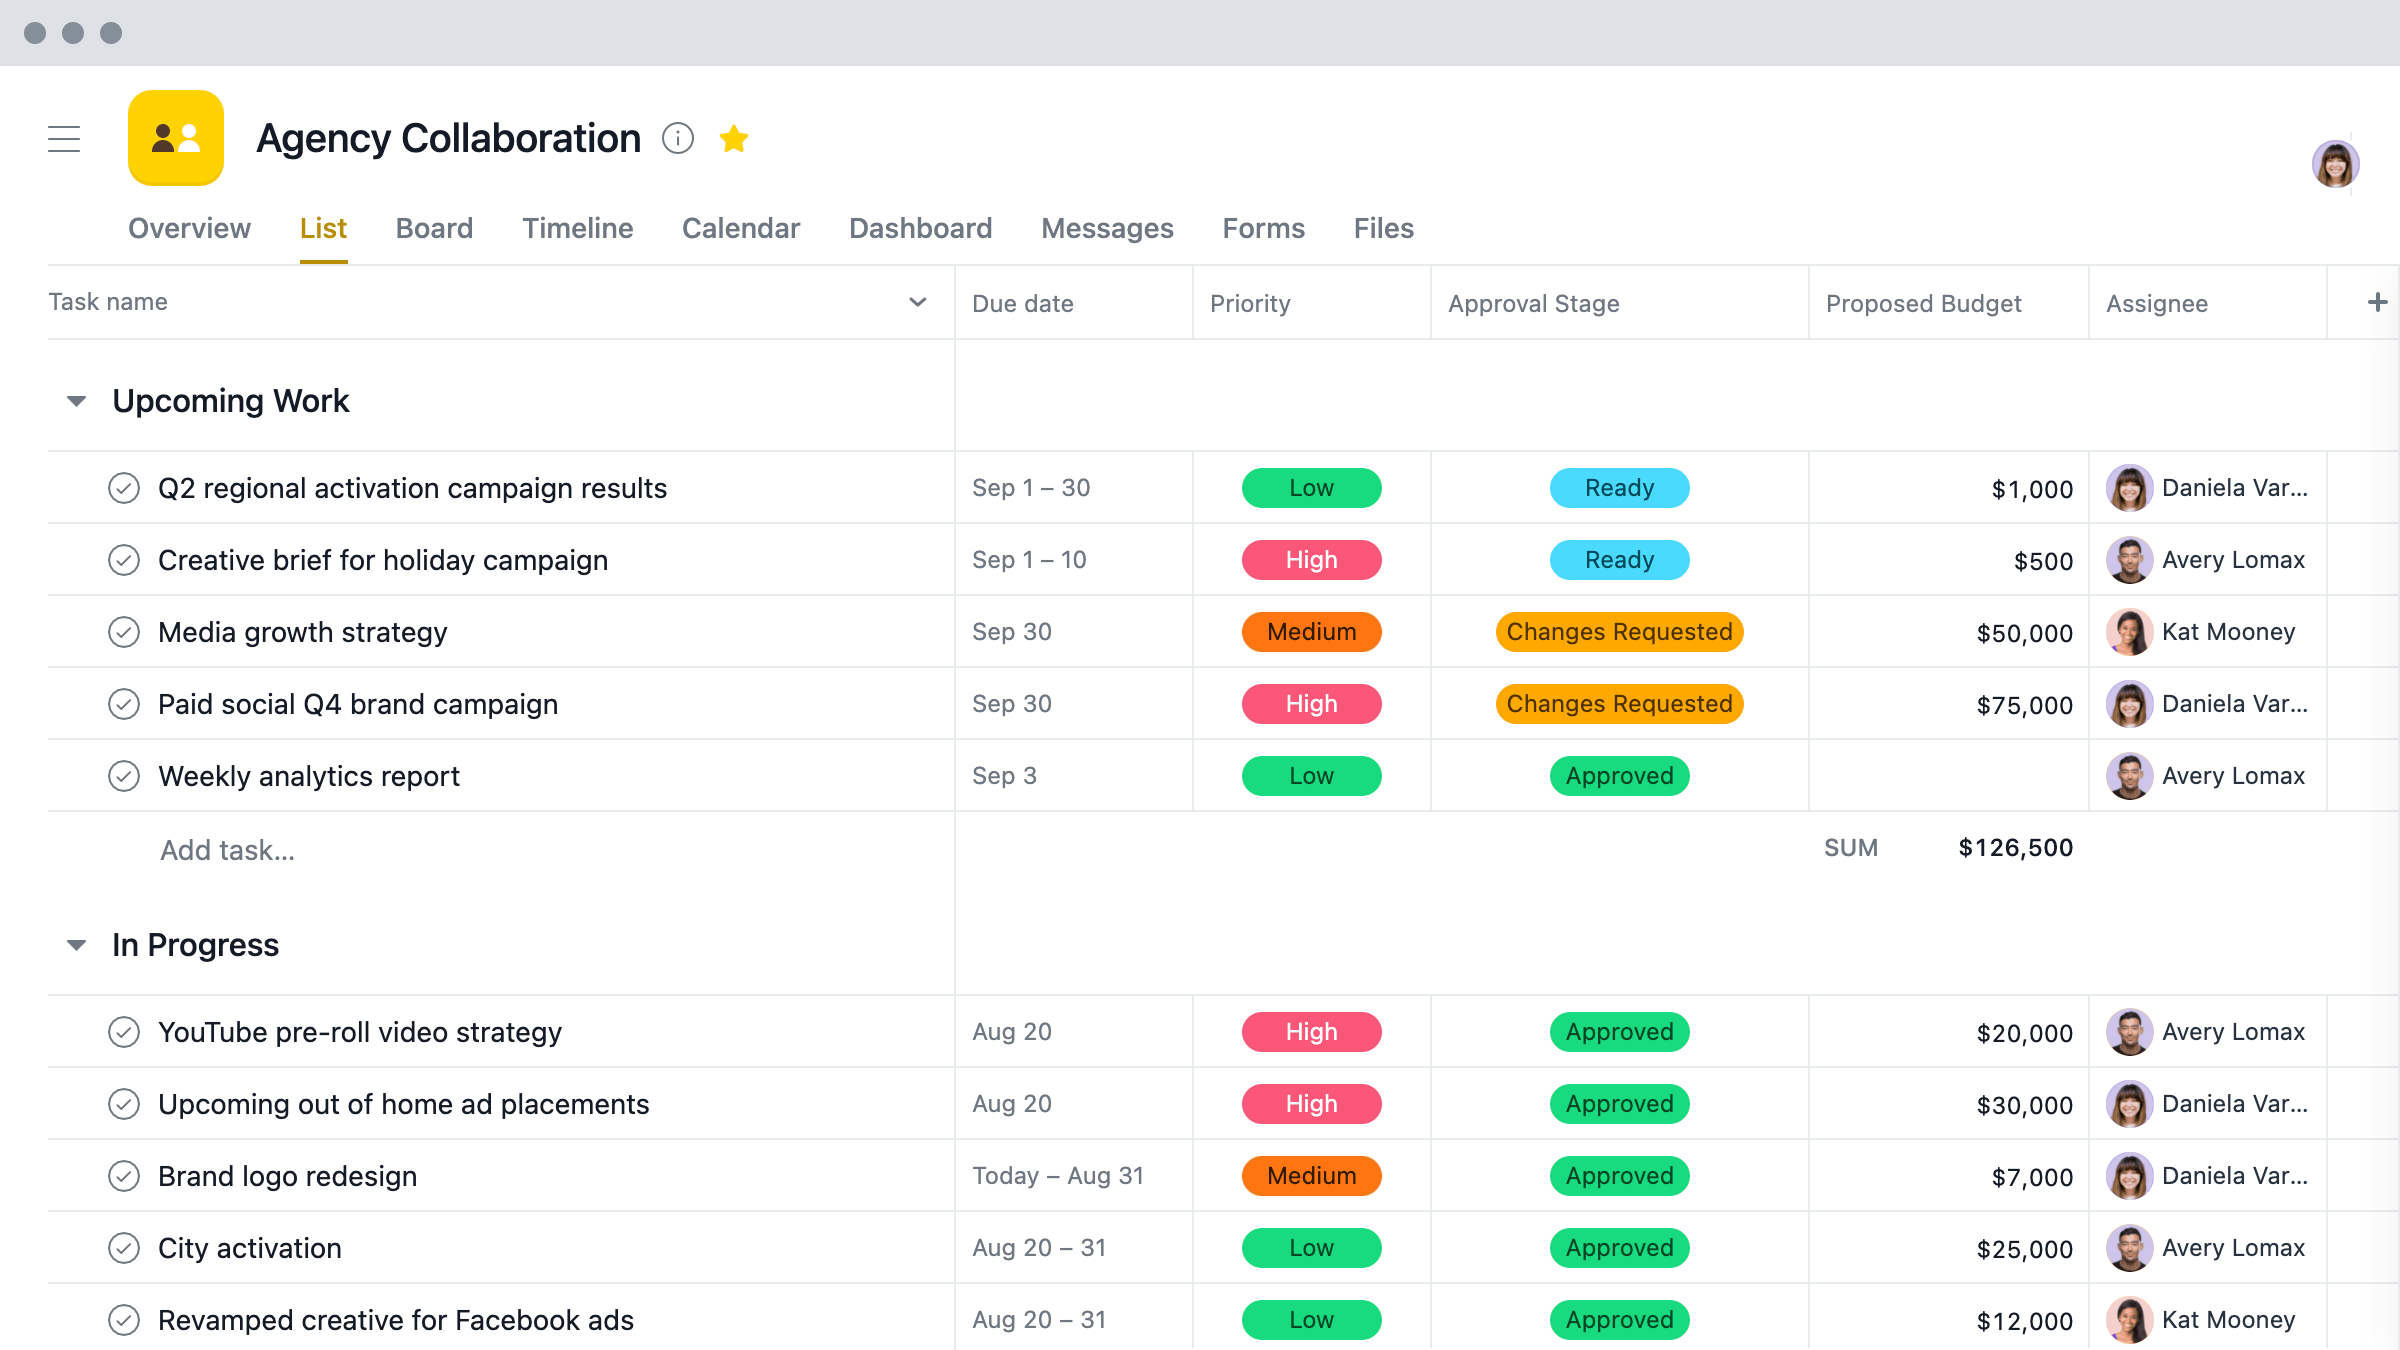 Project Plan Templates - Agency Collaboration